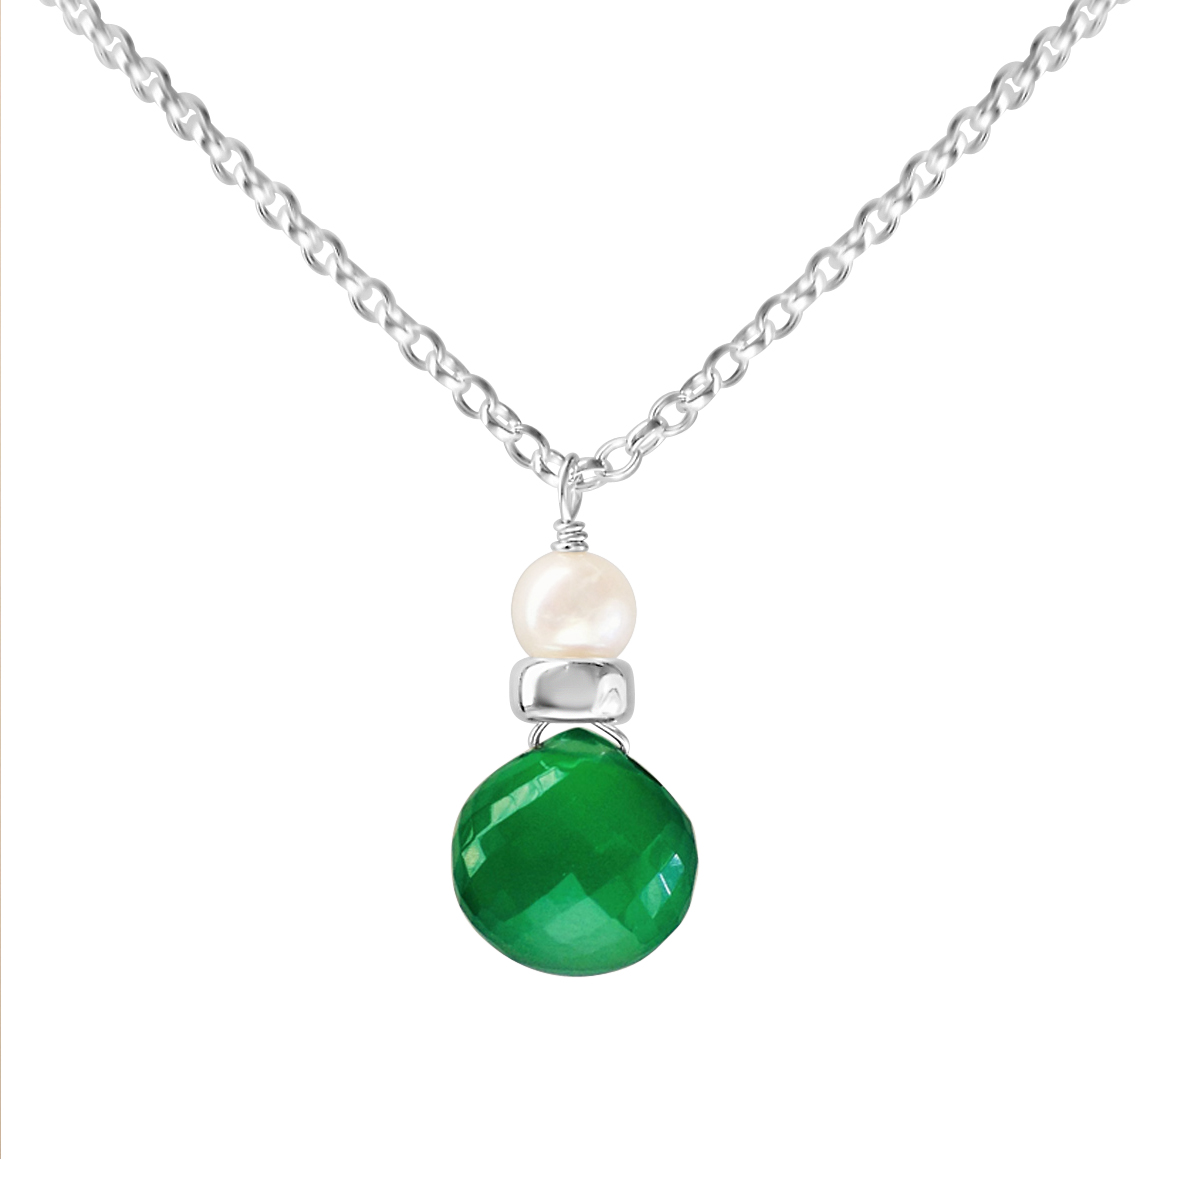 Perfume Bottle green onyx and white pearl necklace